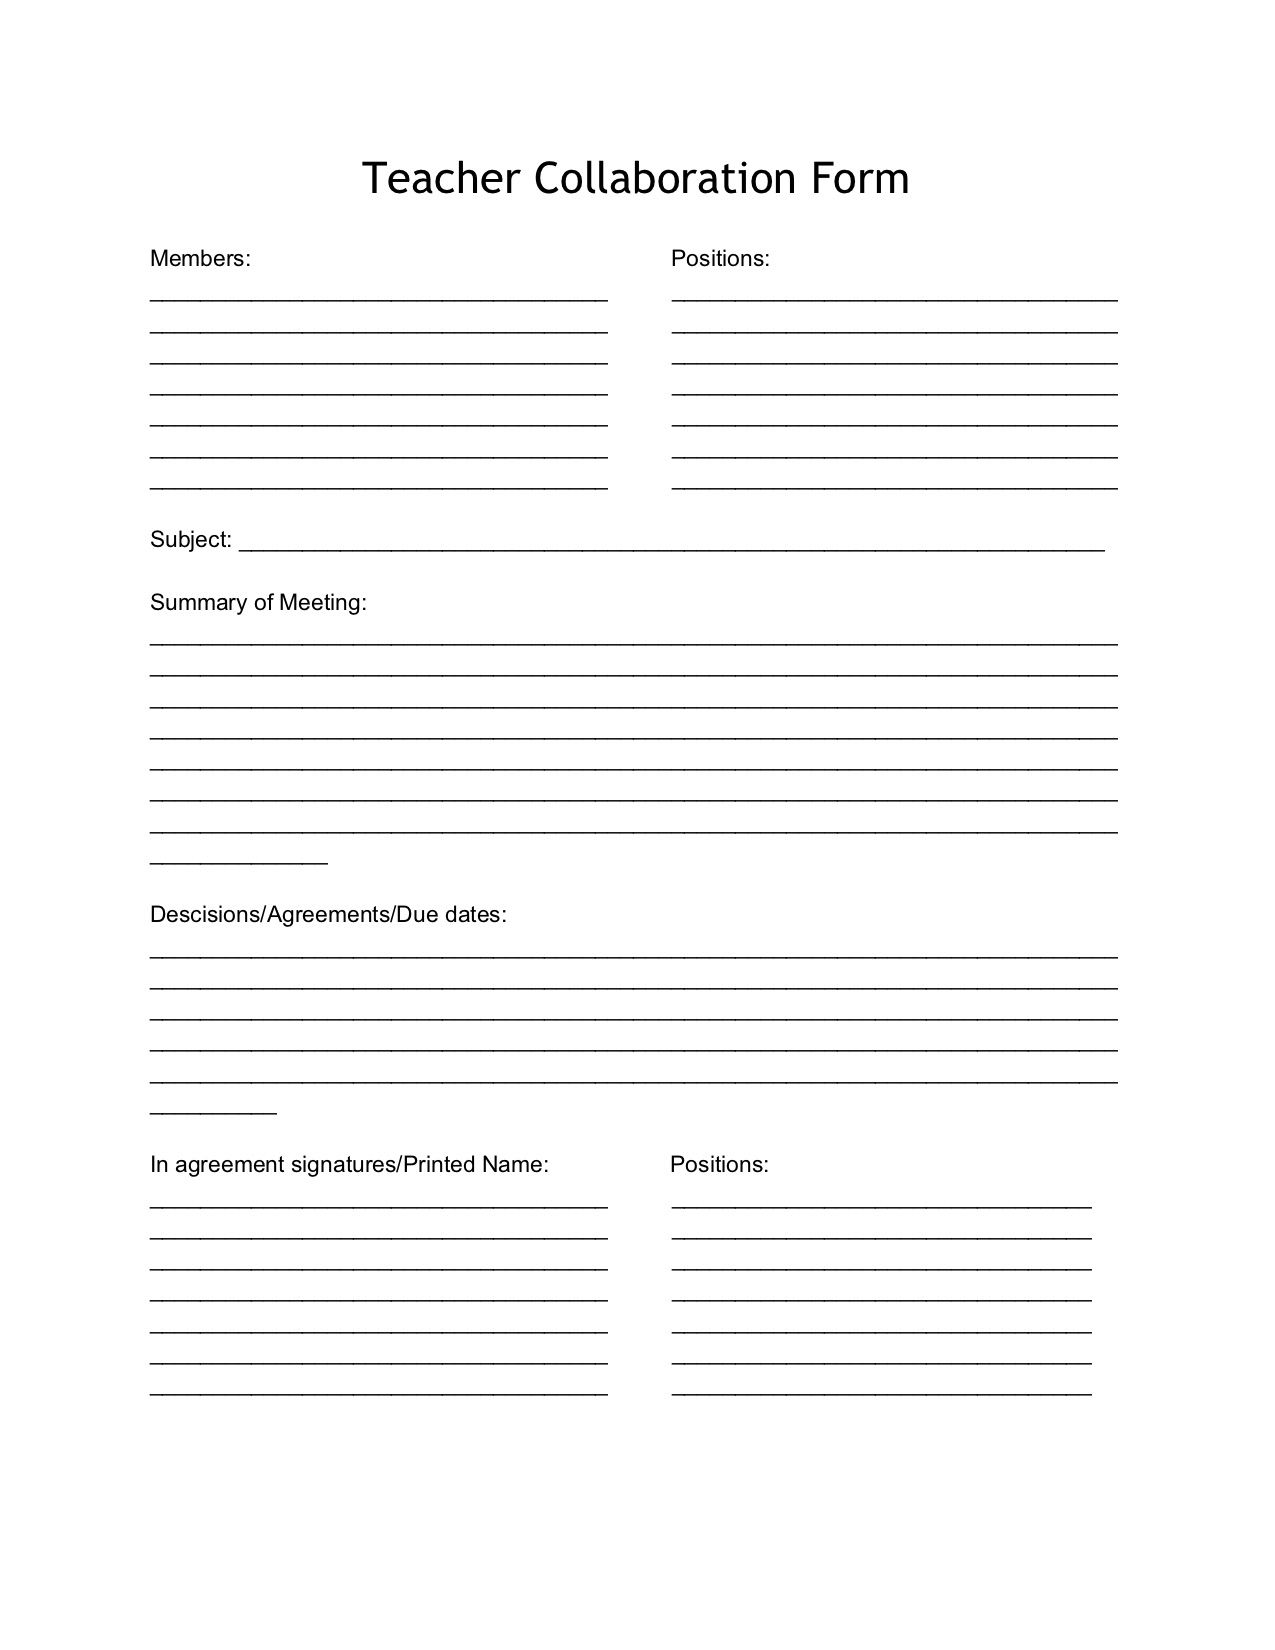 This form is to take notes on during a parent-teacher